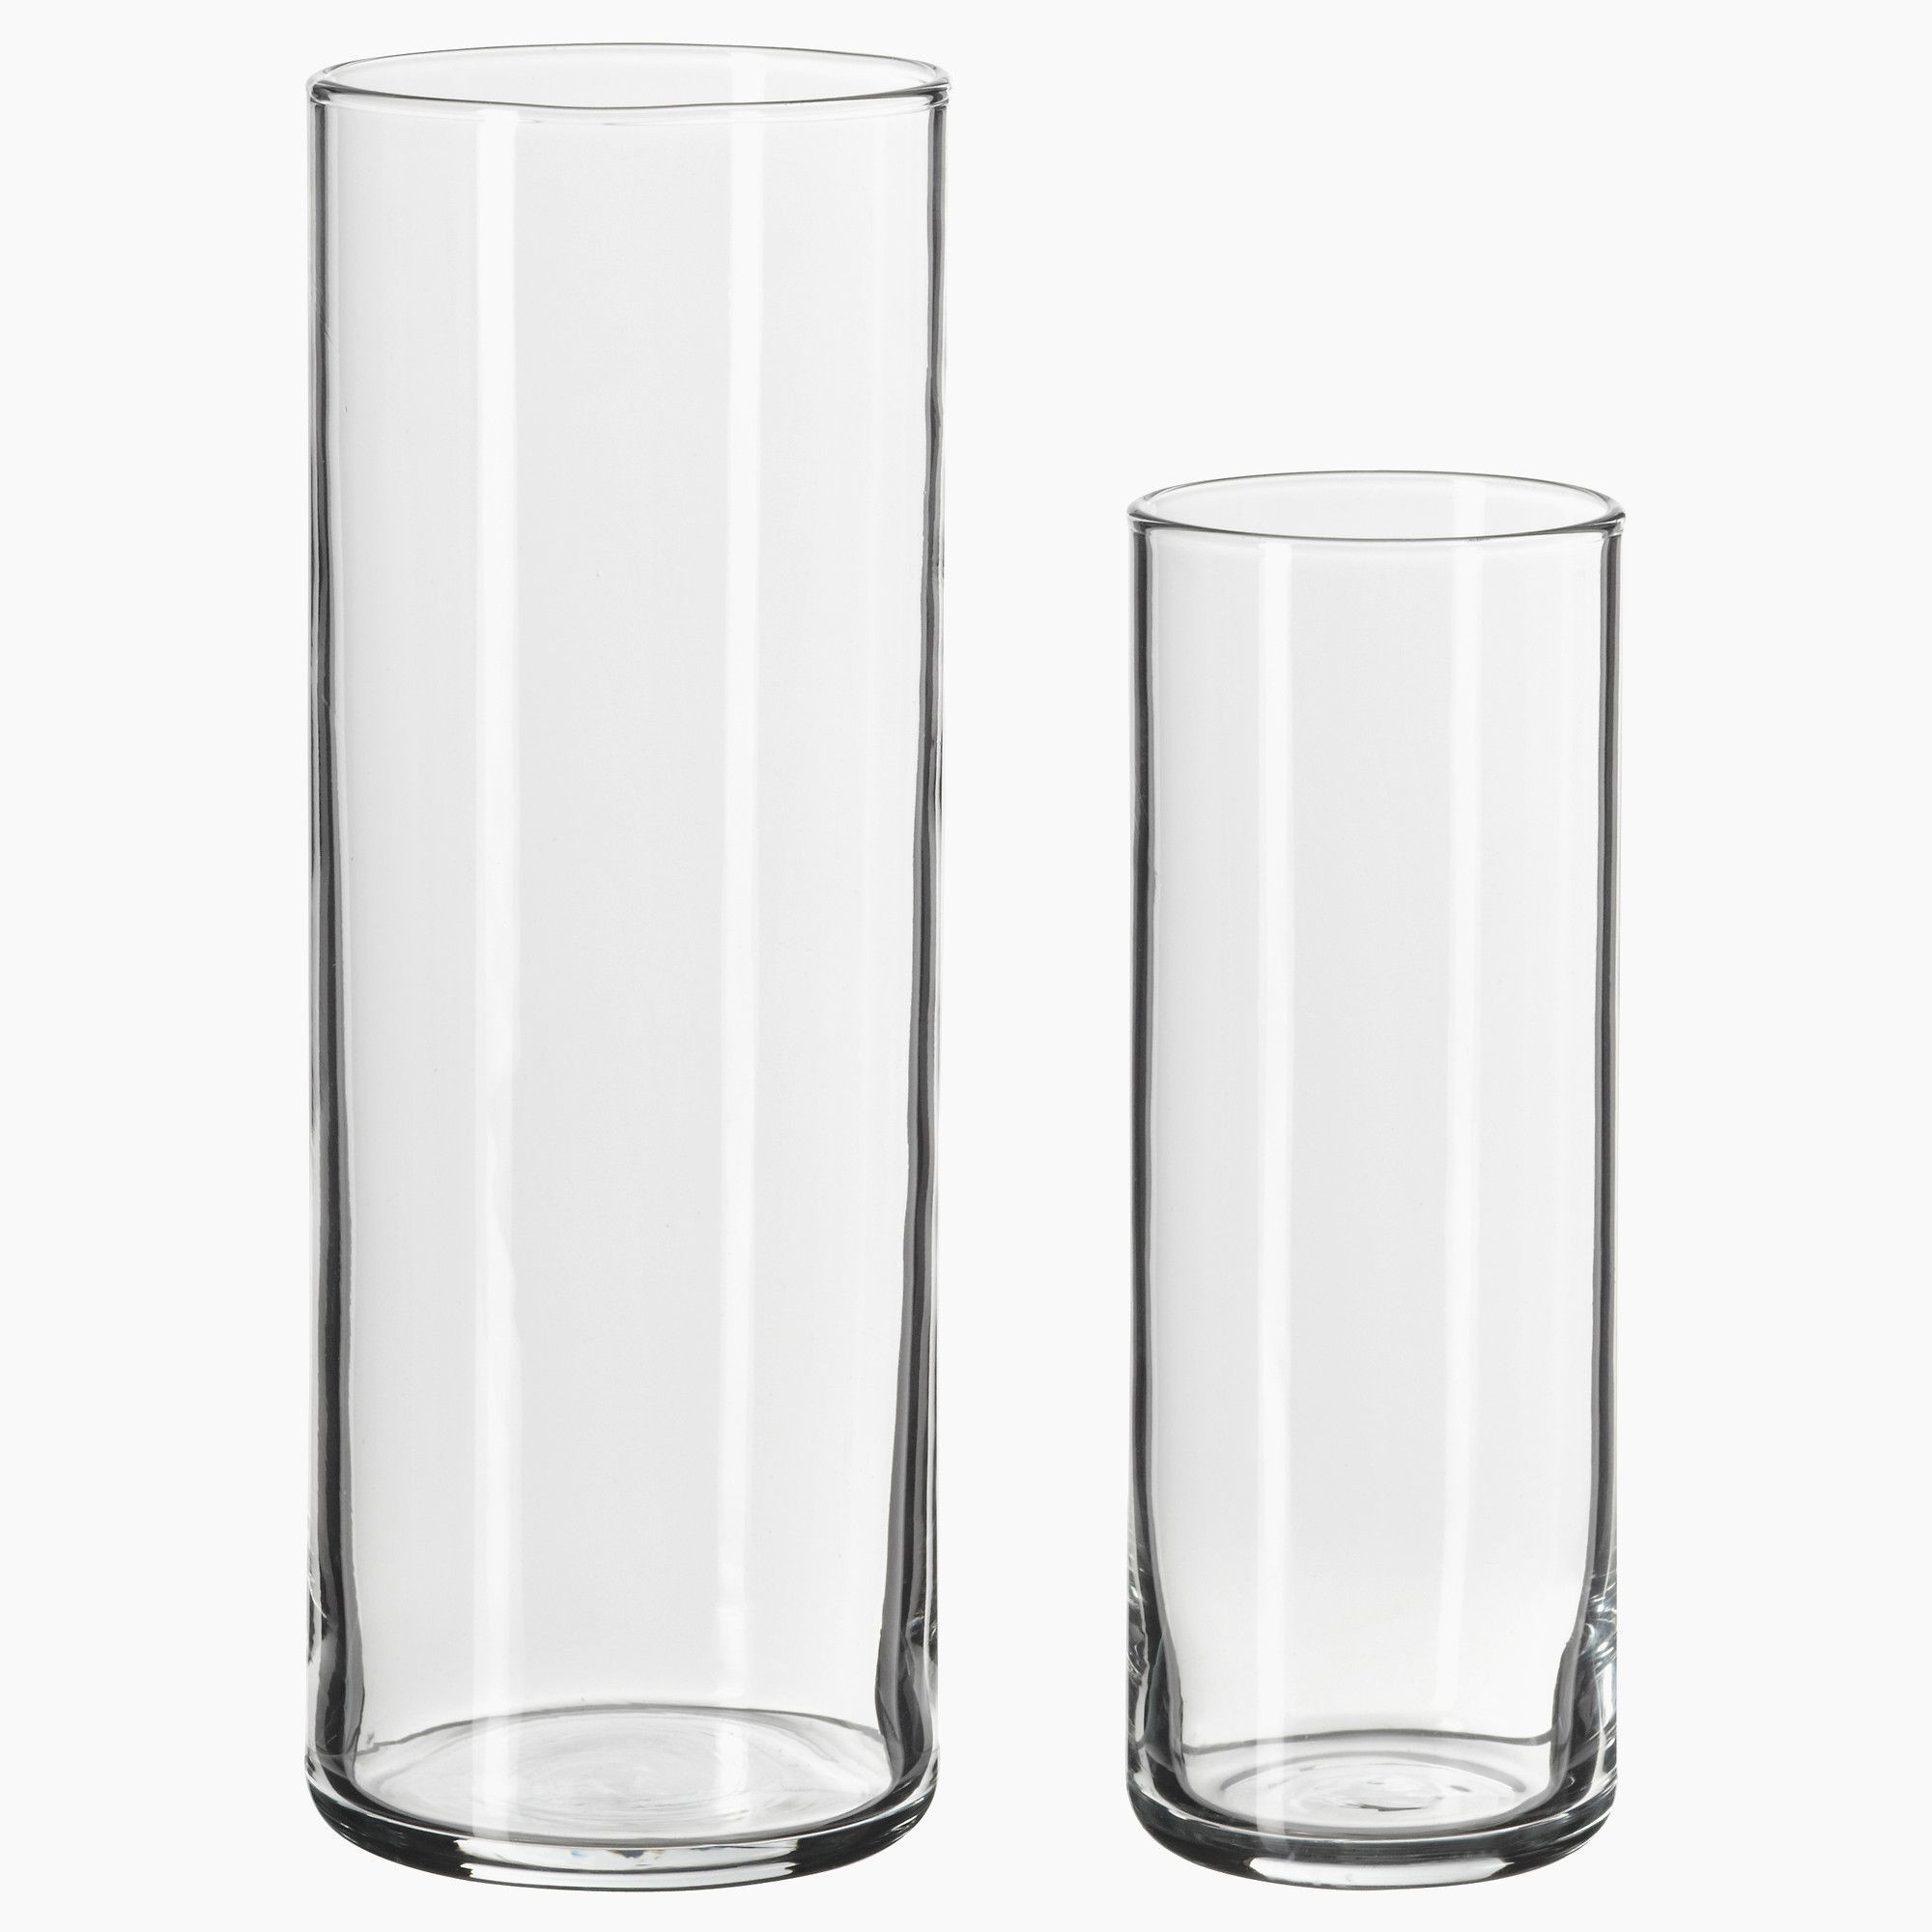 tall crystal vases for centerpieces of 47 vase centerpiece ideas the weekly world intended for wooden wall vase new tall vase centerpiece ideas vases flowers in